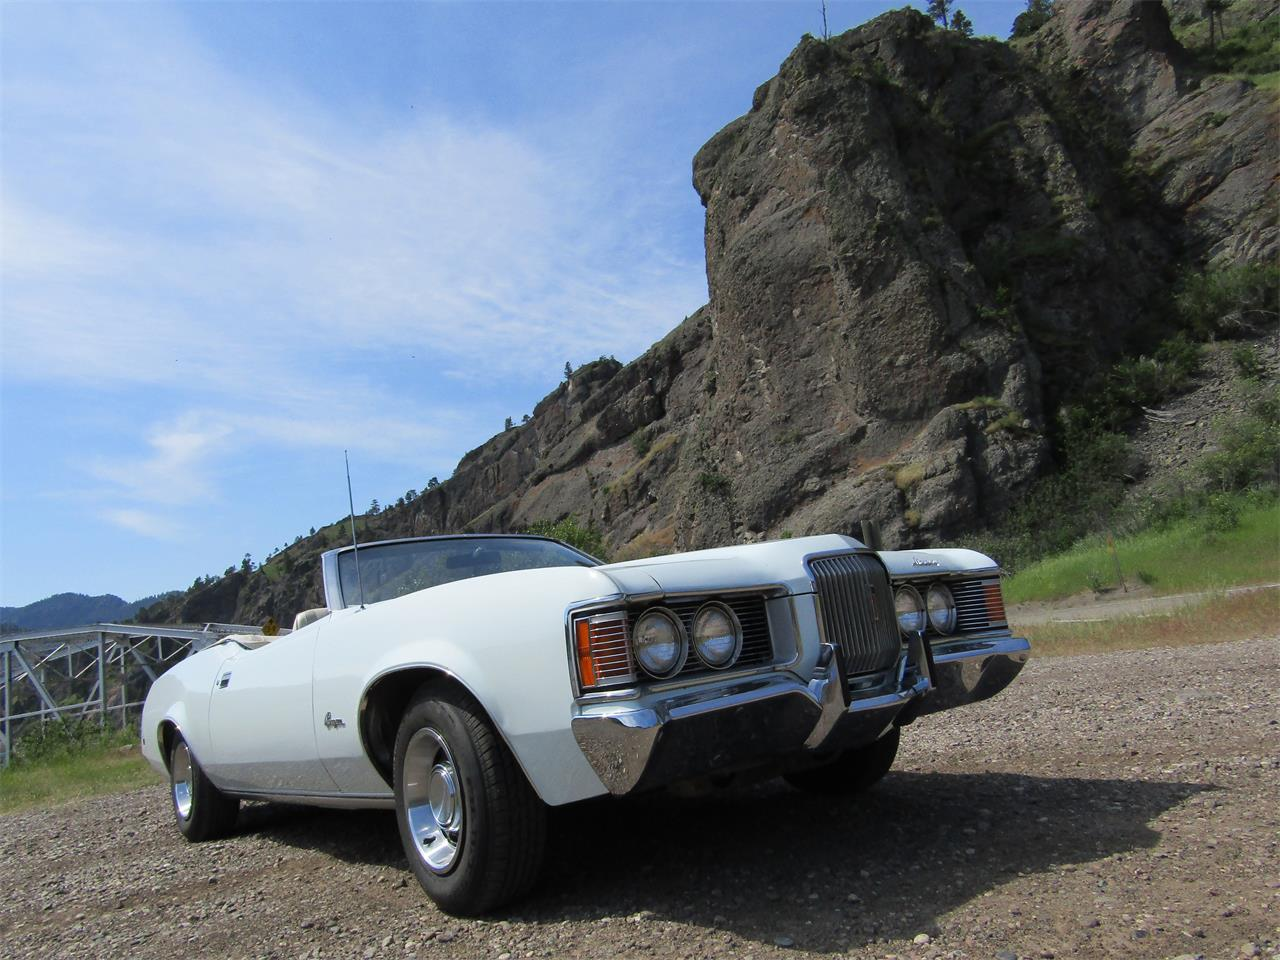 1971 Mercury Cougar (CC-1221581) for sale in Great Falls, Montana